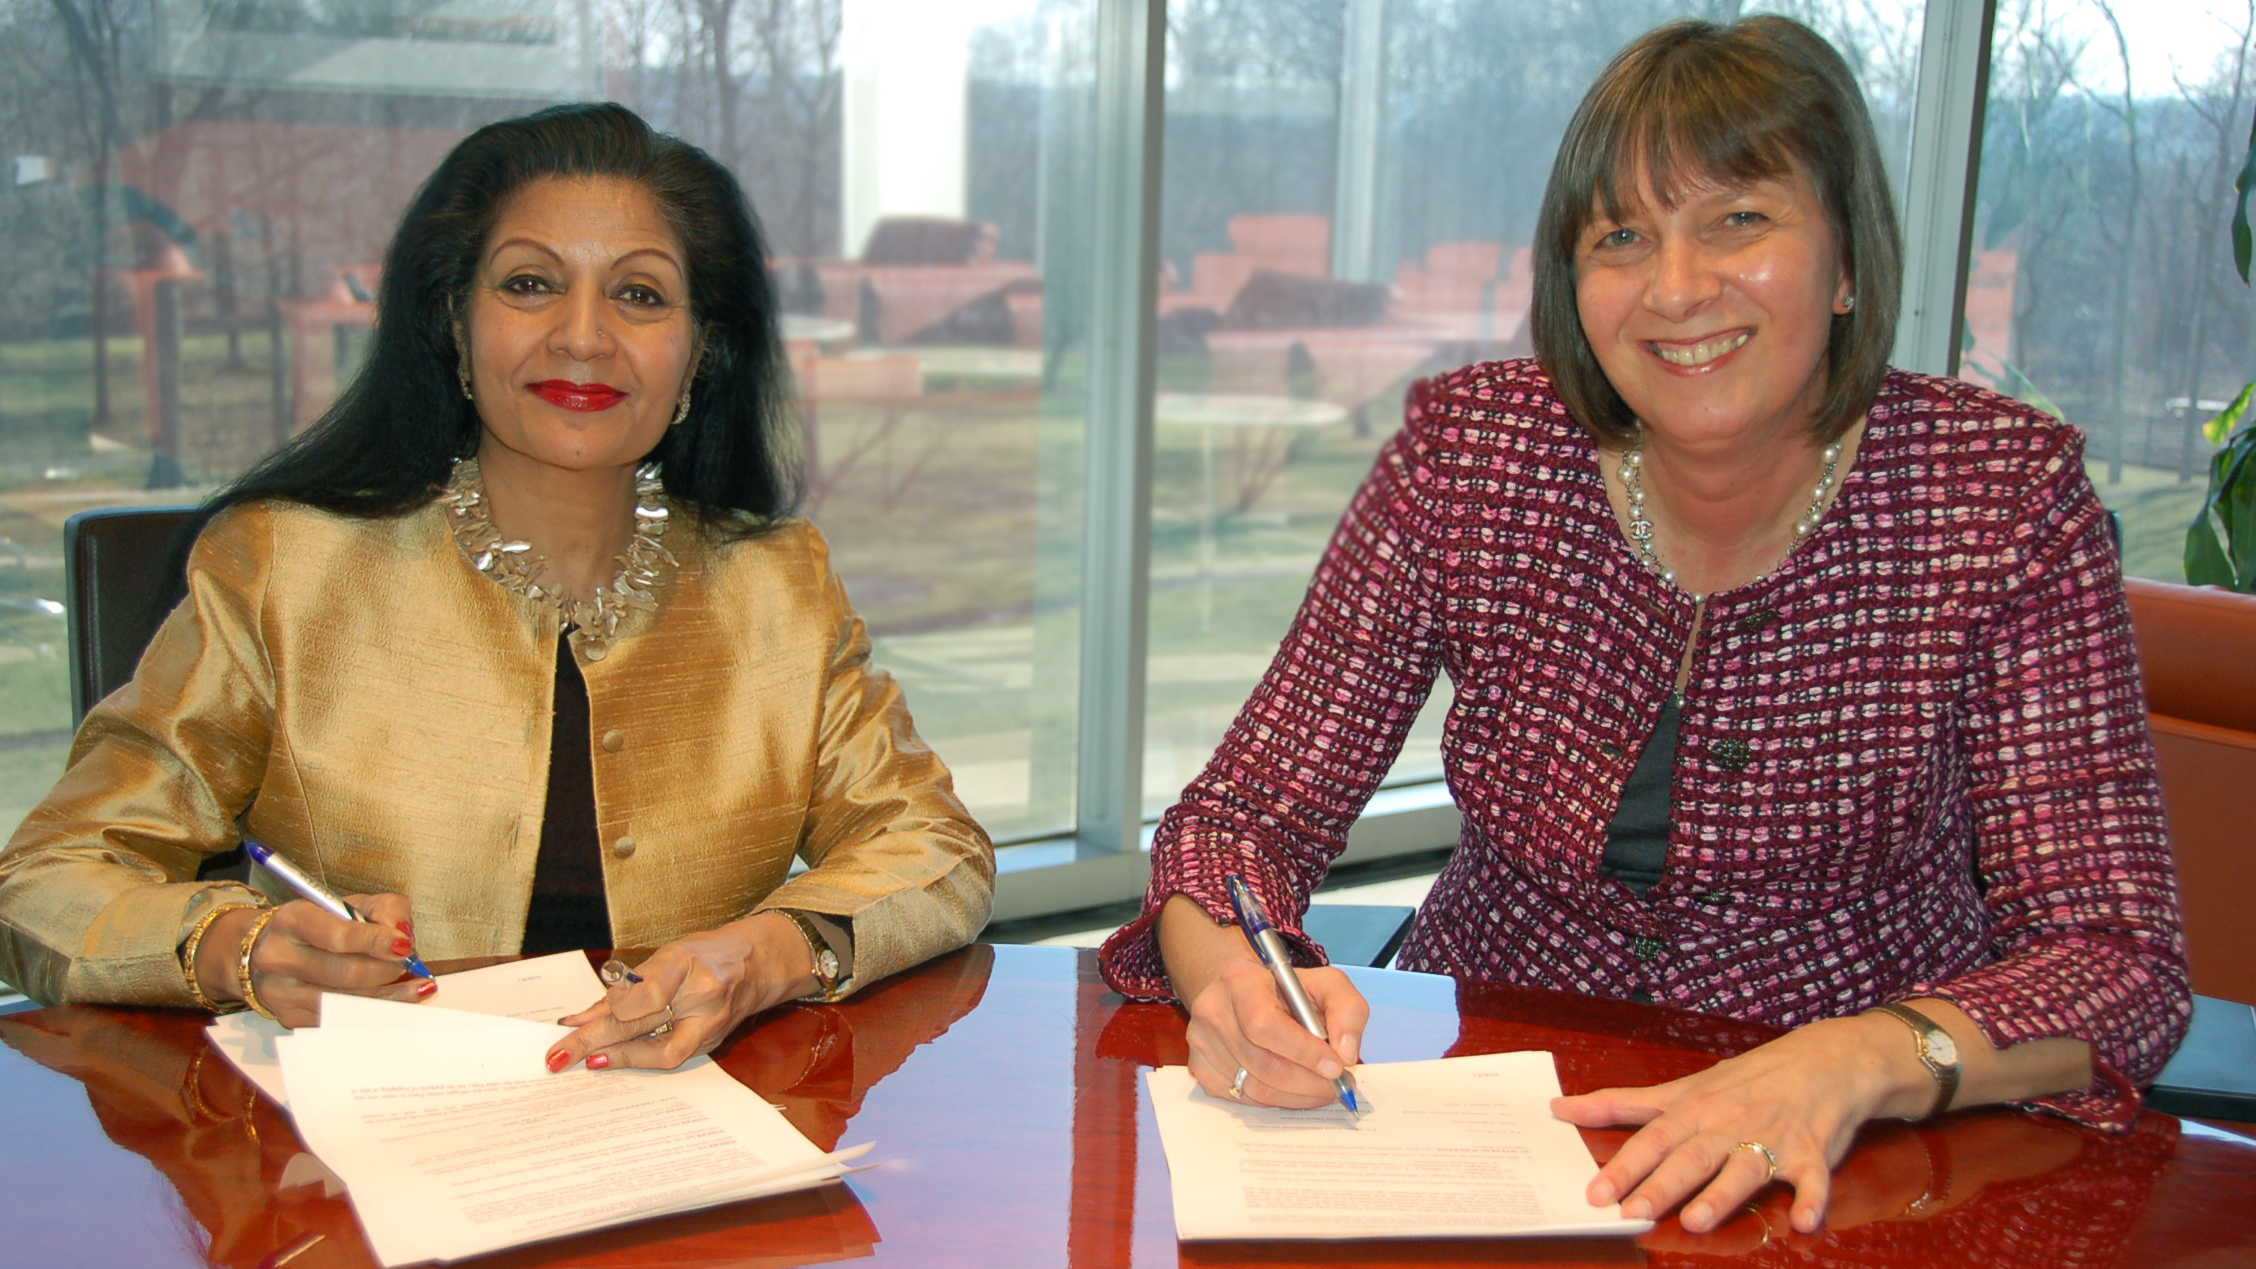 In Purchase NY, MasterCard's CFO, Martina Hund-Mejean signs a Memorandum of Understanding (MOU), with Lakshmi Puri, United Nations Assistant Secretary-General Deputy Executive Director.